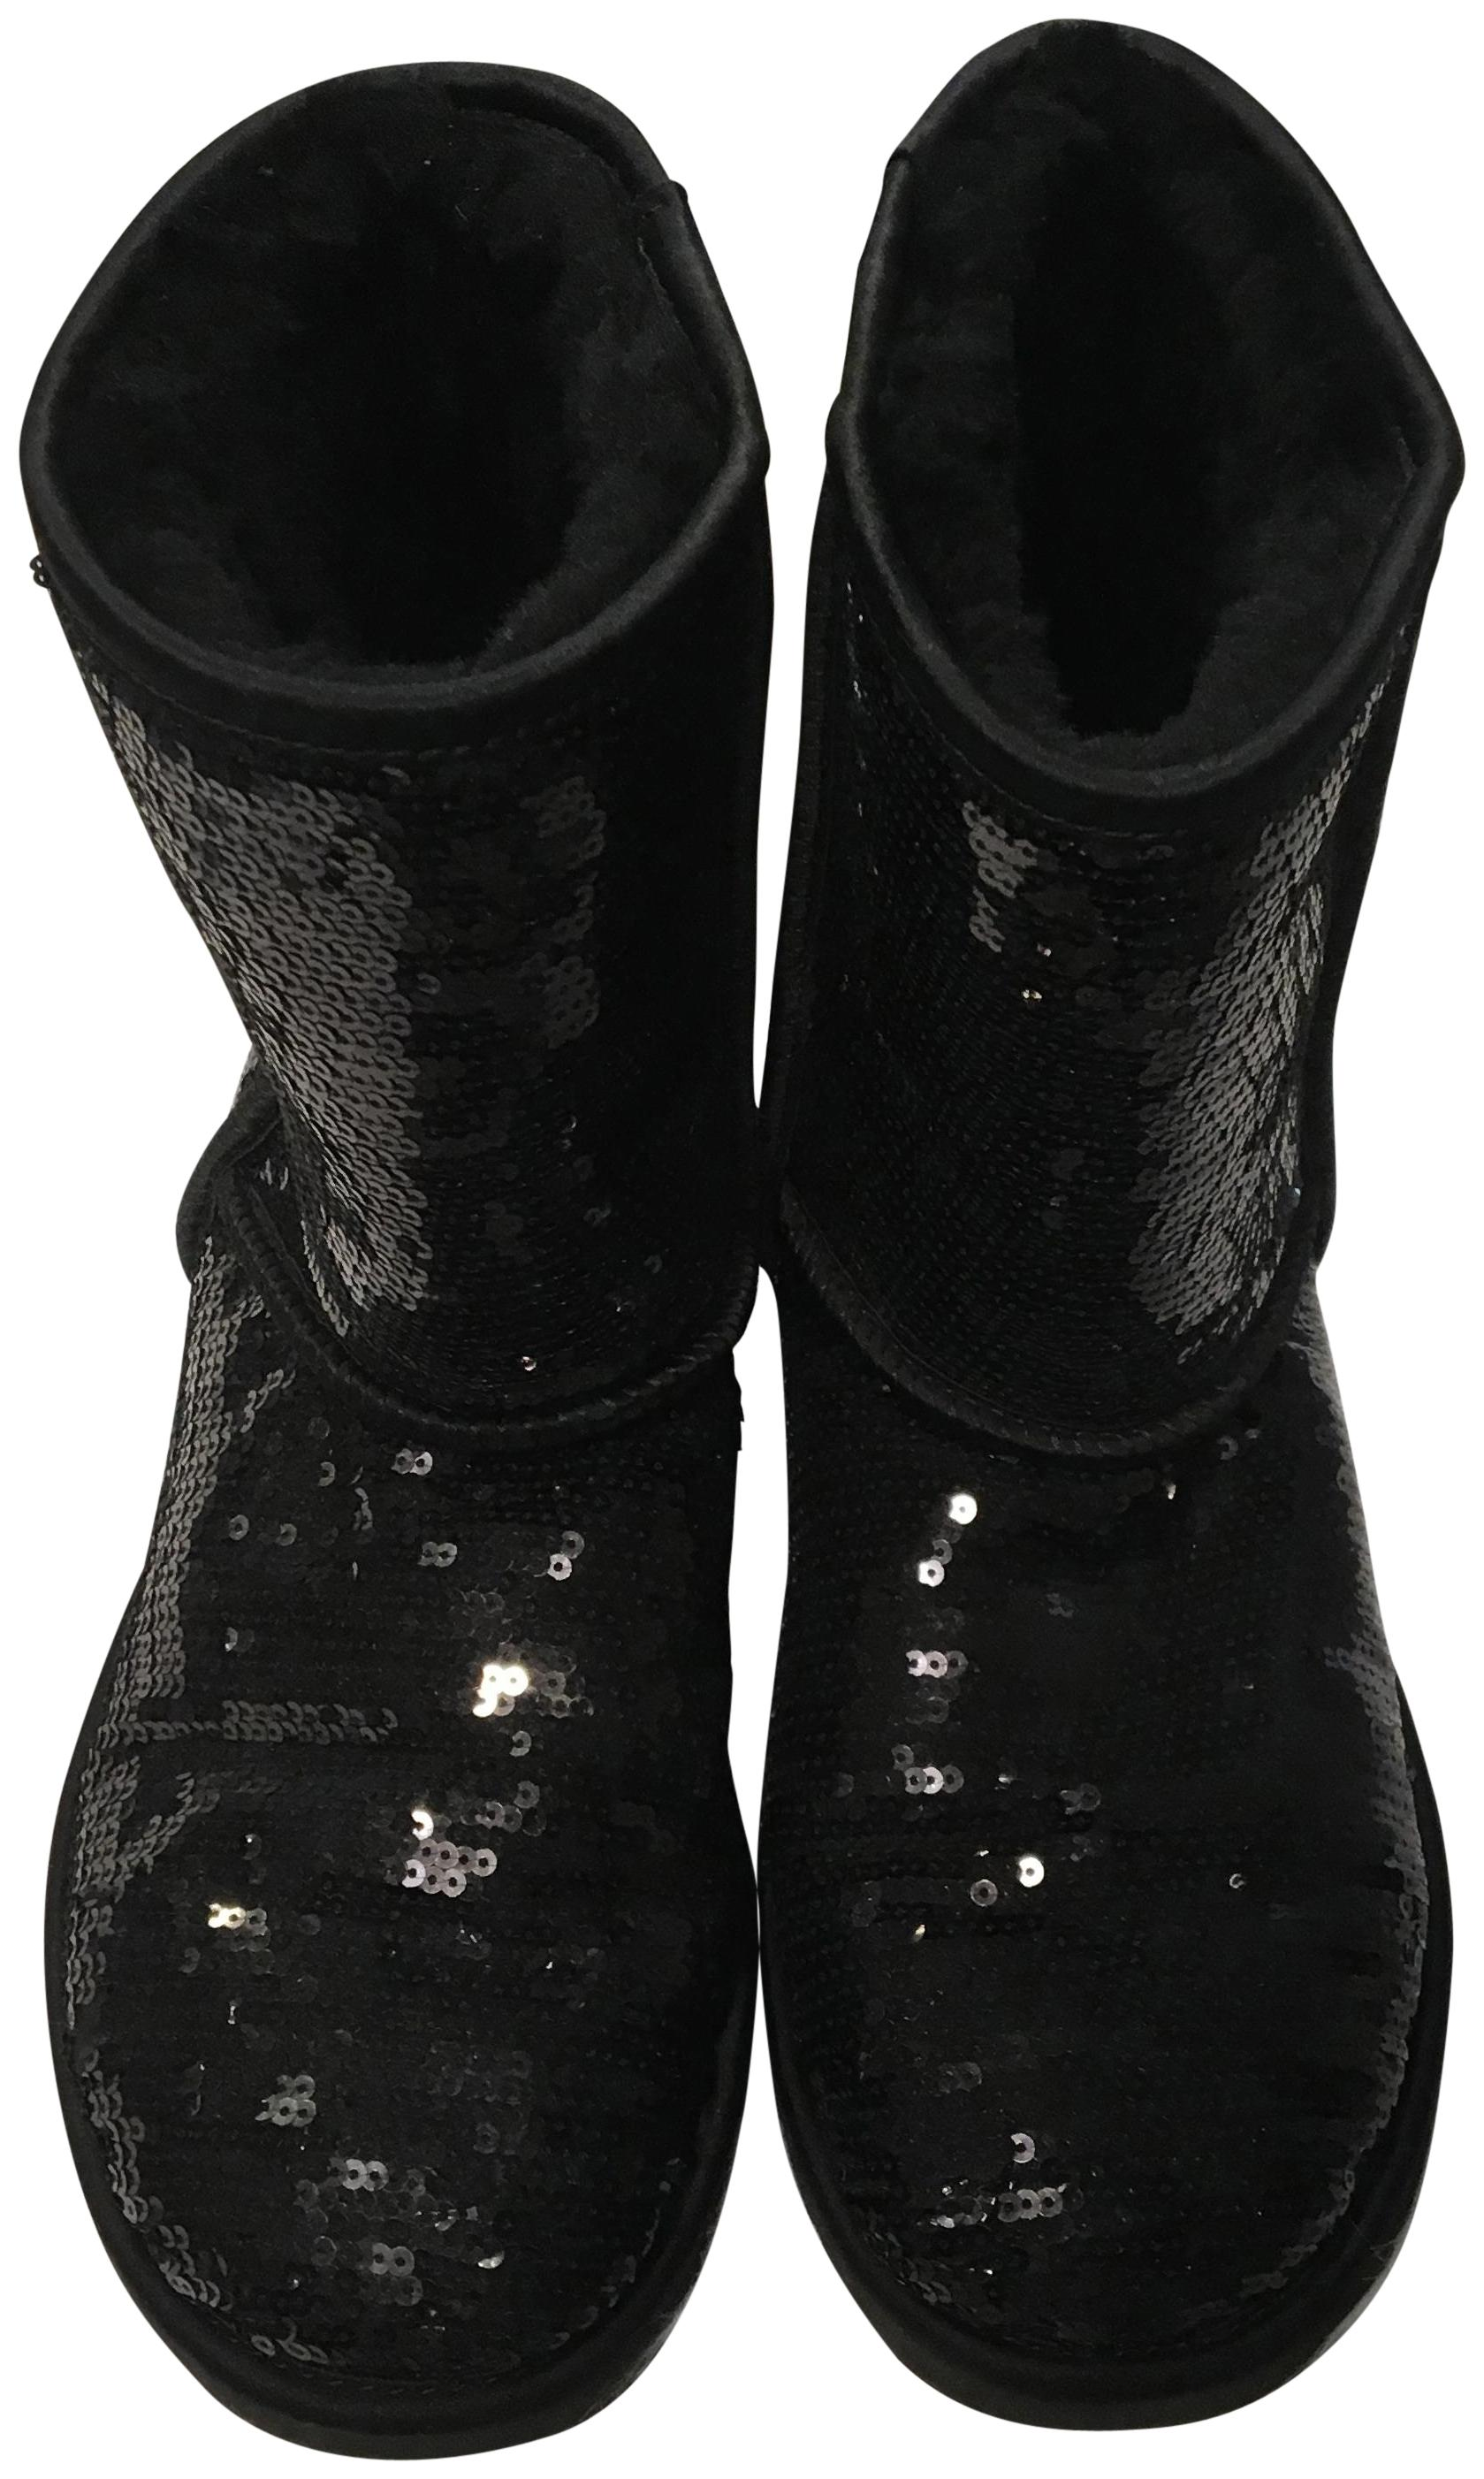 UGG Australia Winter Uggs Sparkle Uggs Black Boots ...